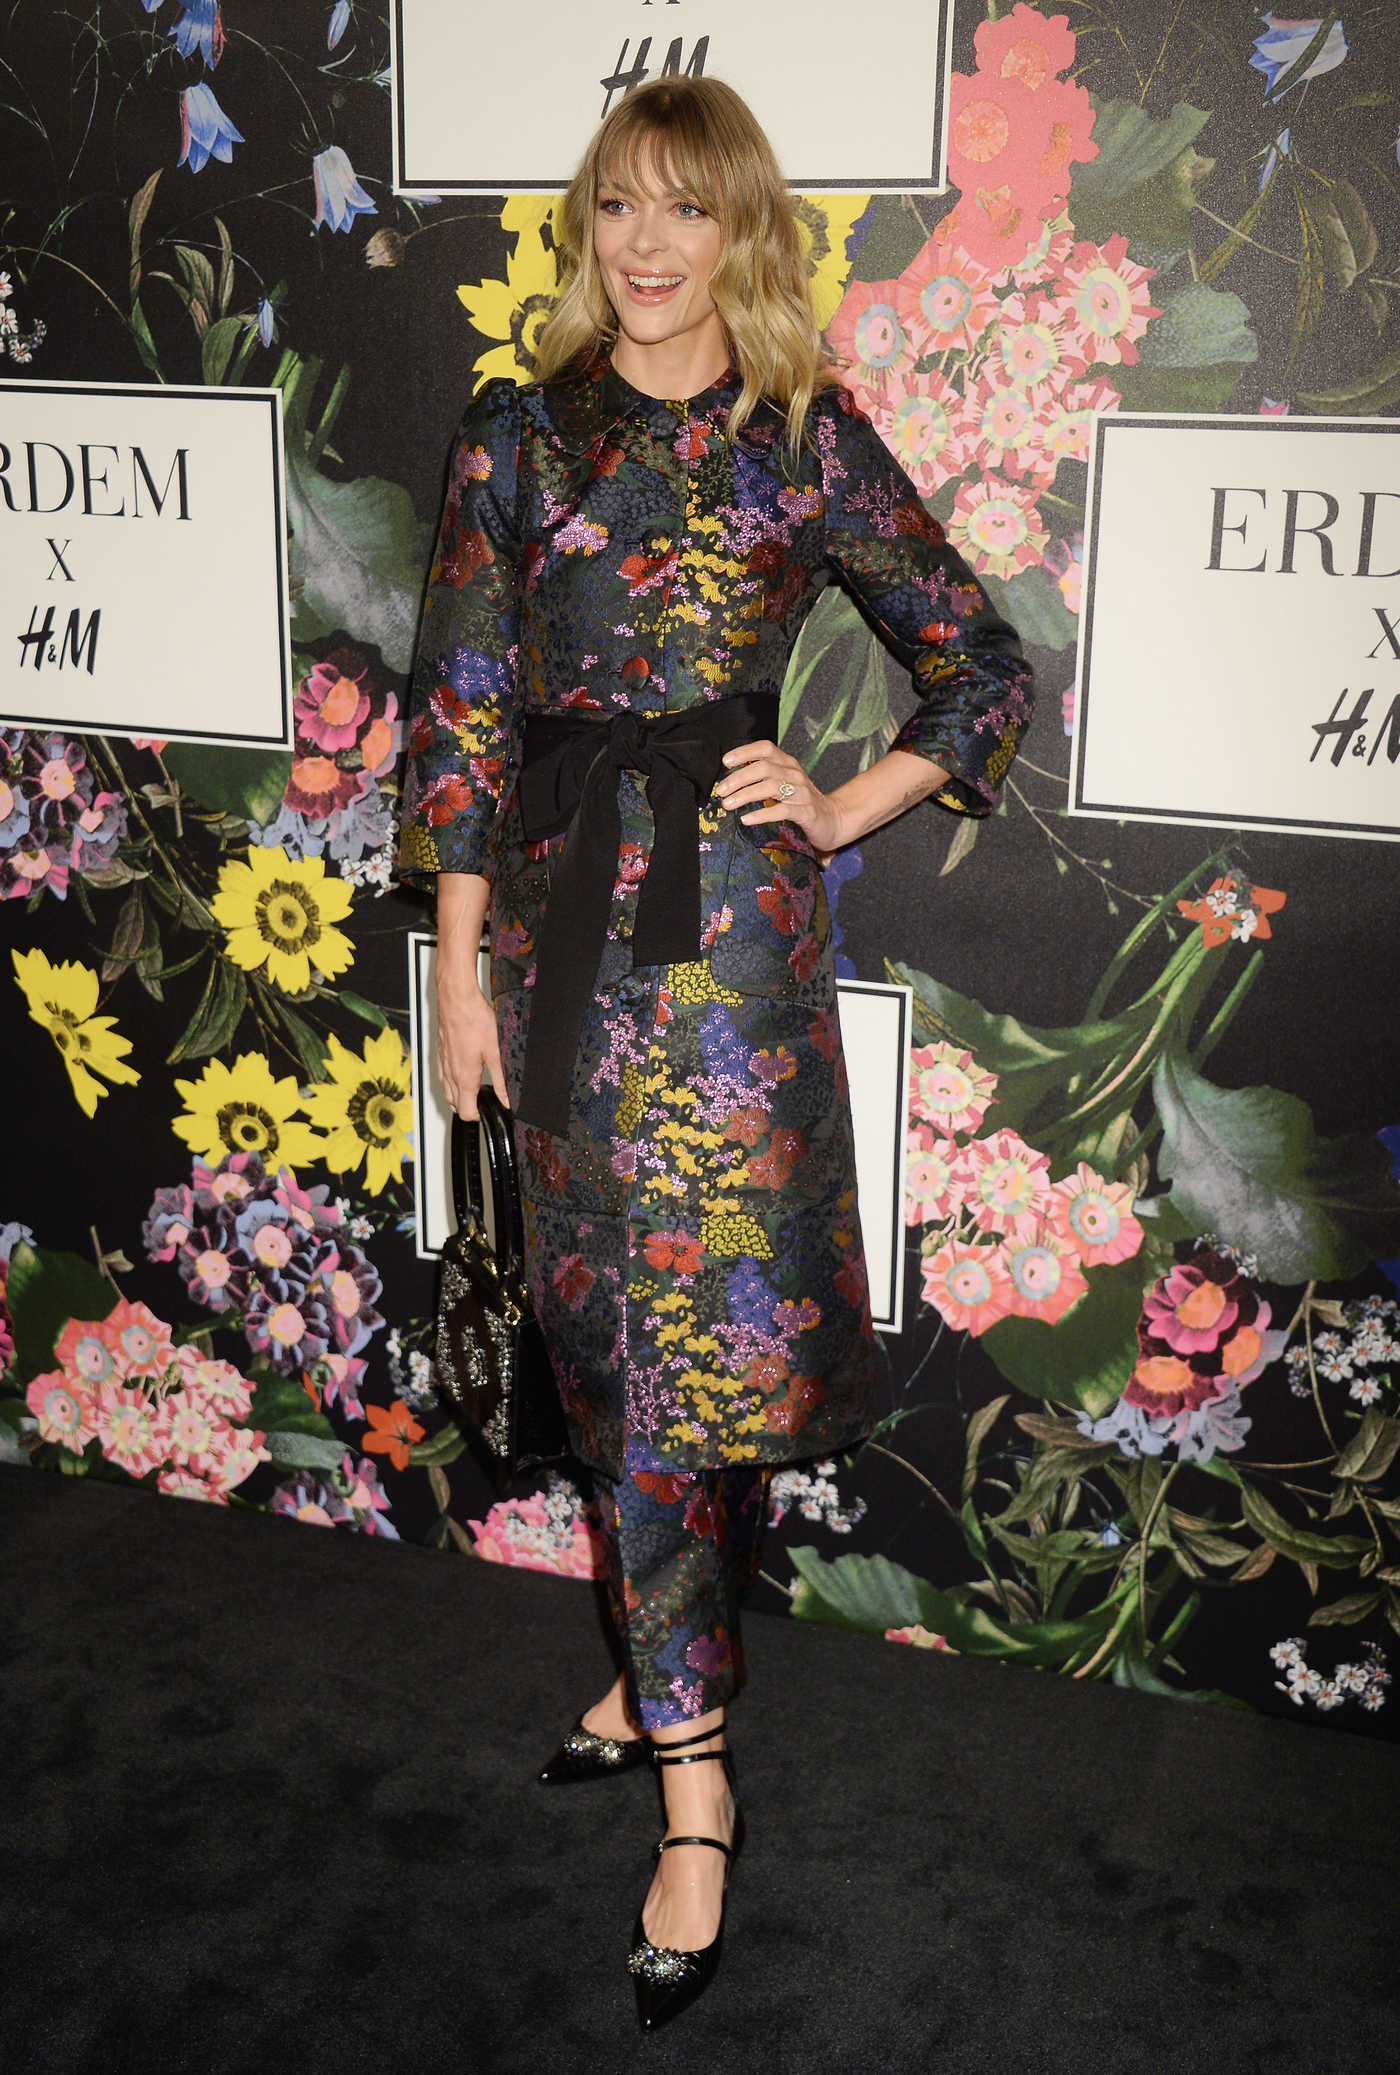 Jaime King at Erdem x H&M Launch Event in Los Angeles 10/18/2017